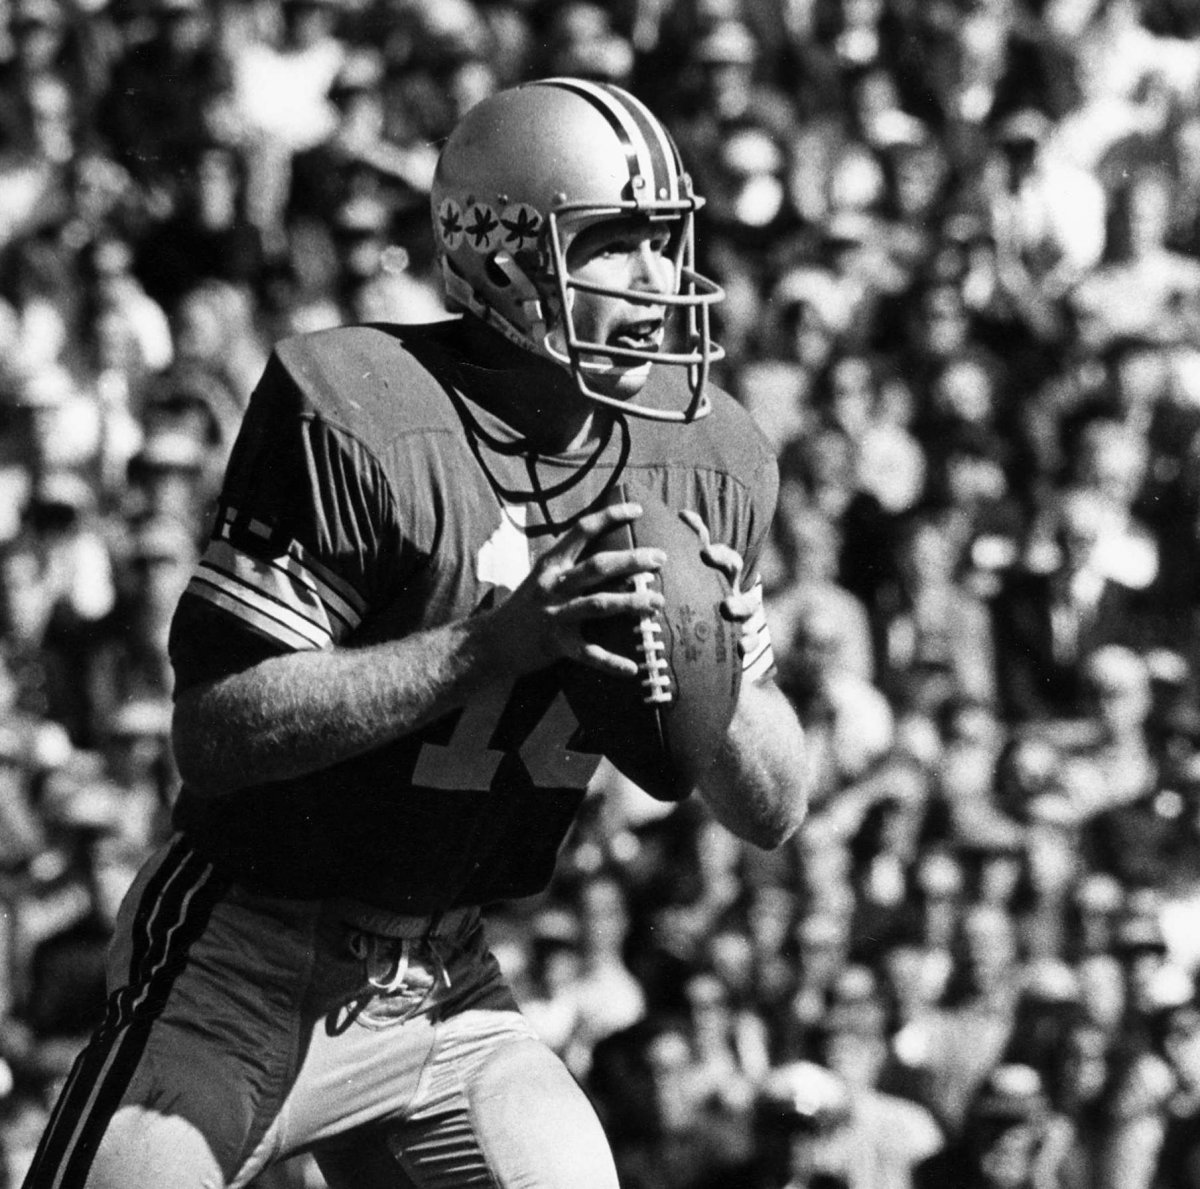 Rex Kern against Northwestern.